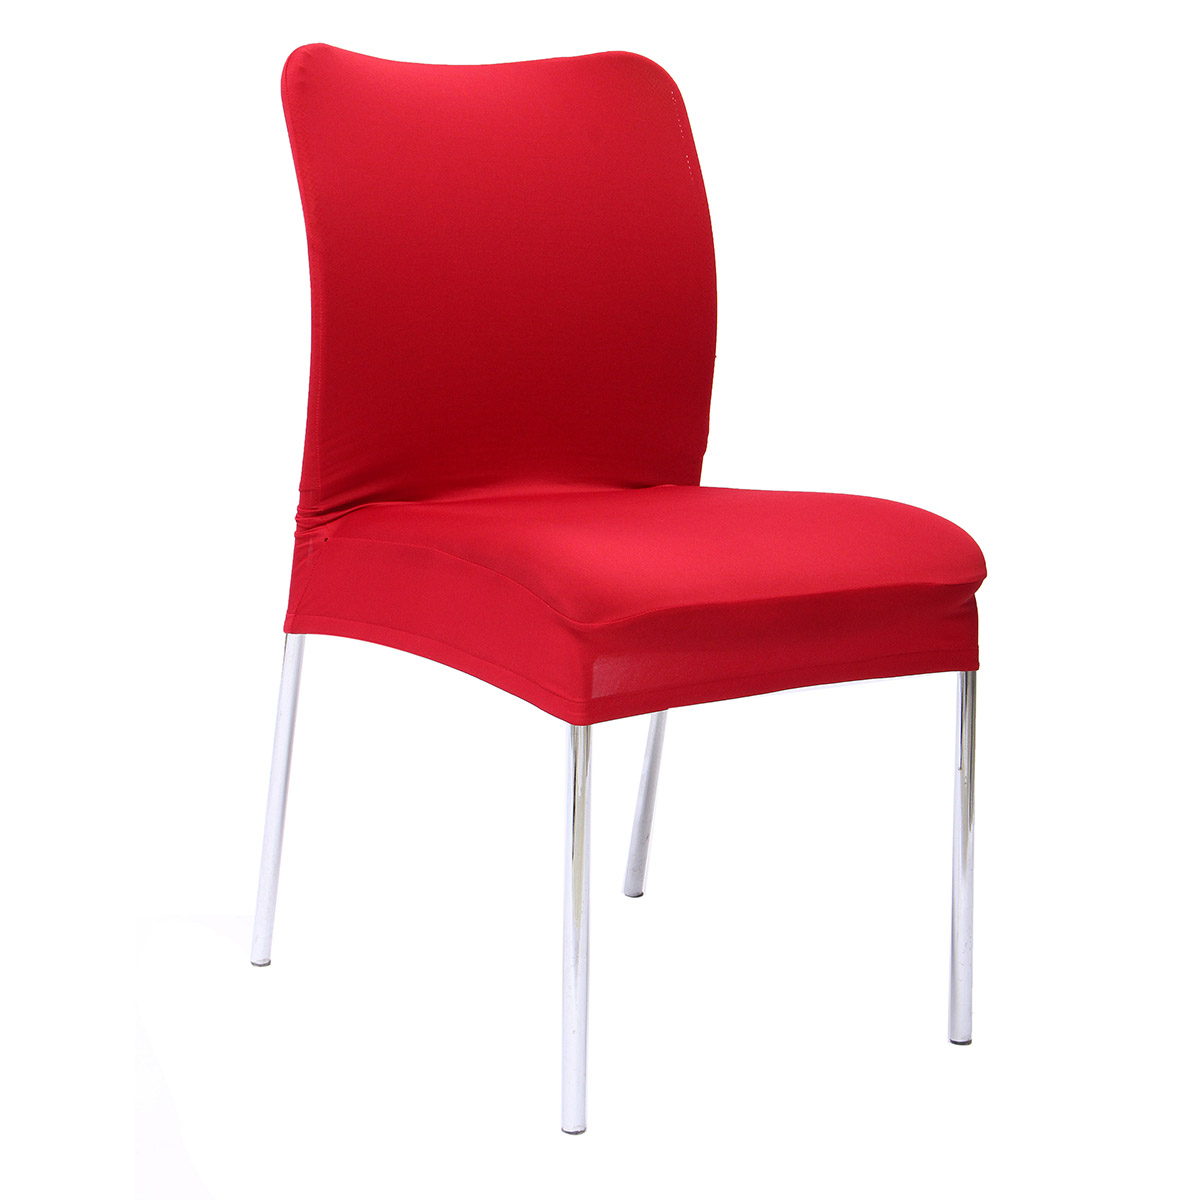 Stretch Soft Stool Seat Chair Cover Removable Dining Room  : 61ffef94 e447 4d24 b063 30d5bc26f182 from www.lazada.com.my size 1200 x 1200 jpeg 88kB